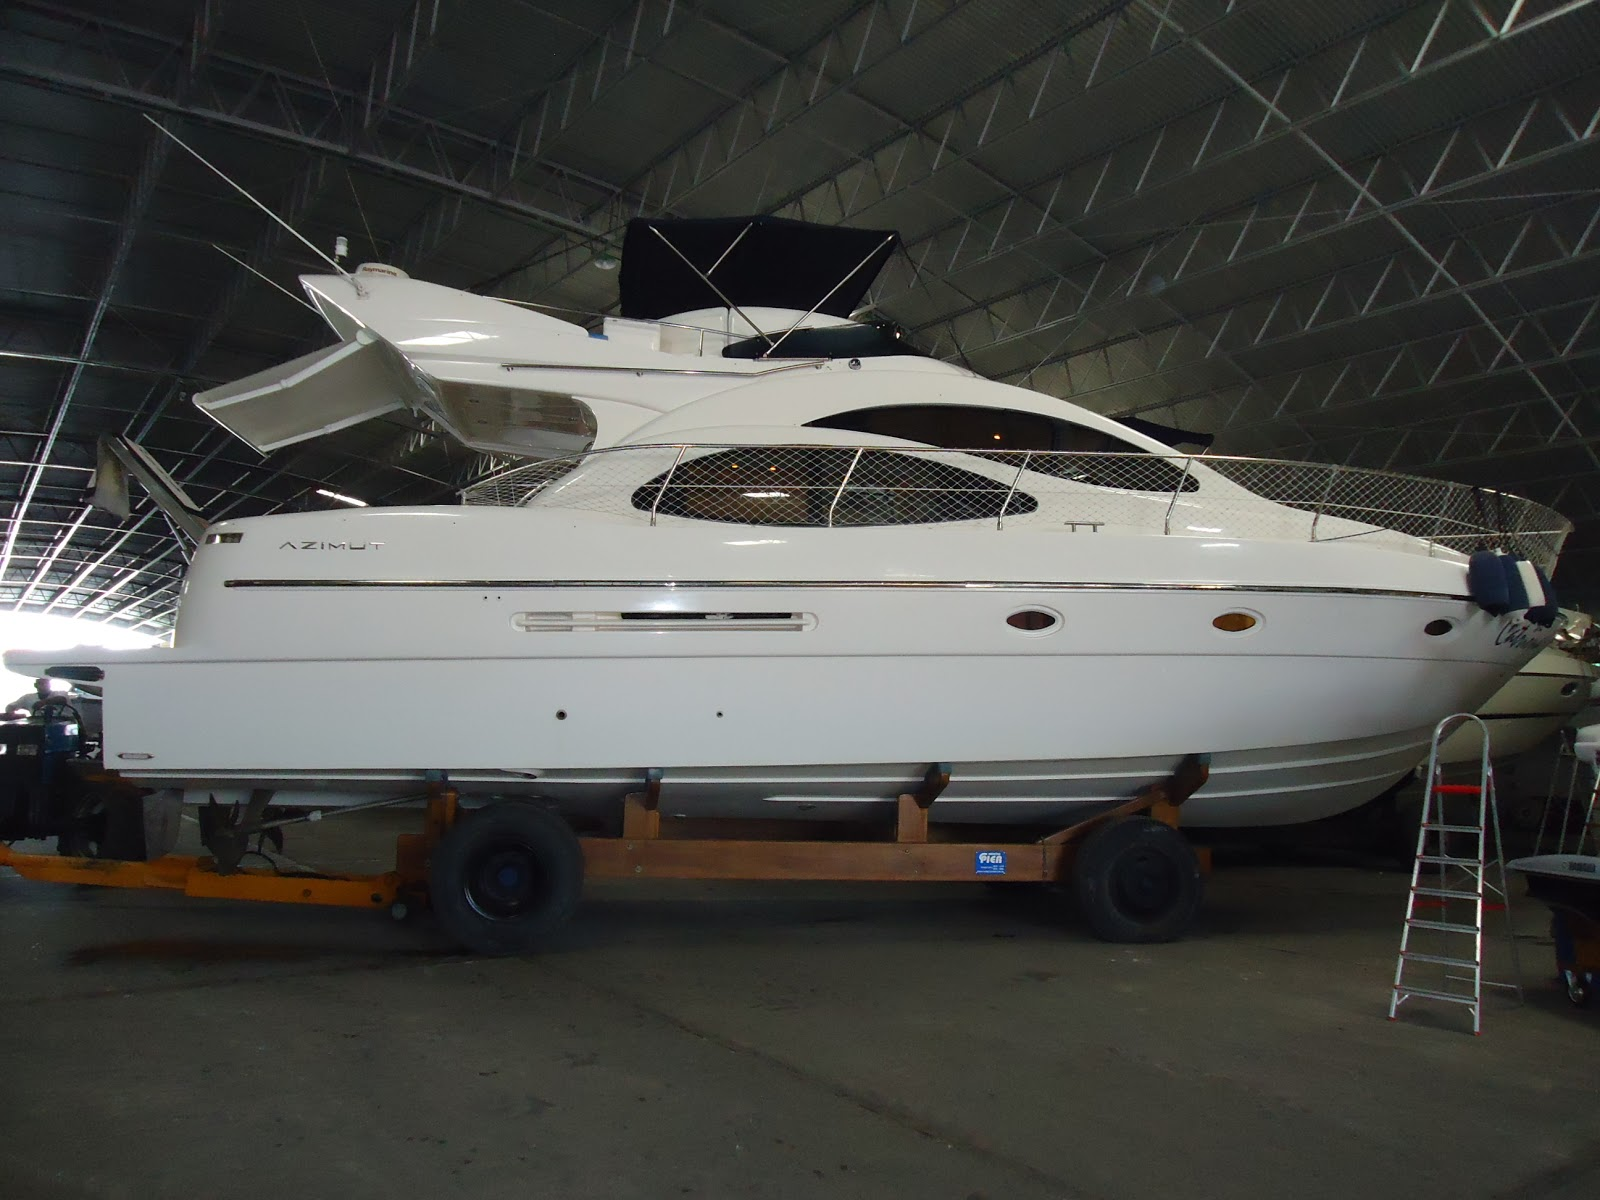 INTERMARINE AZIMUT 460 FULL 2005